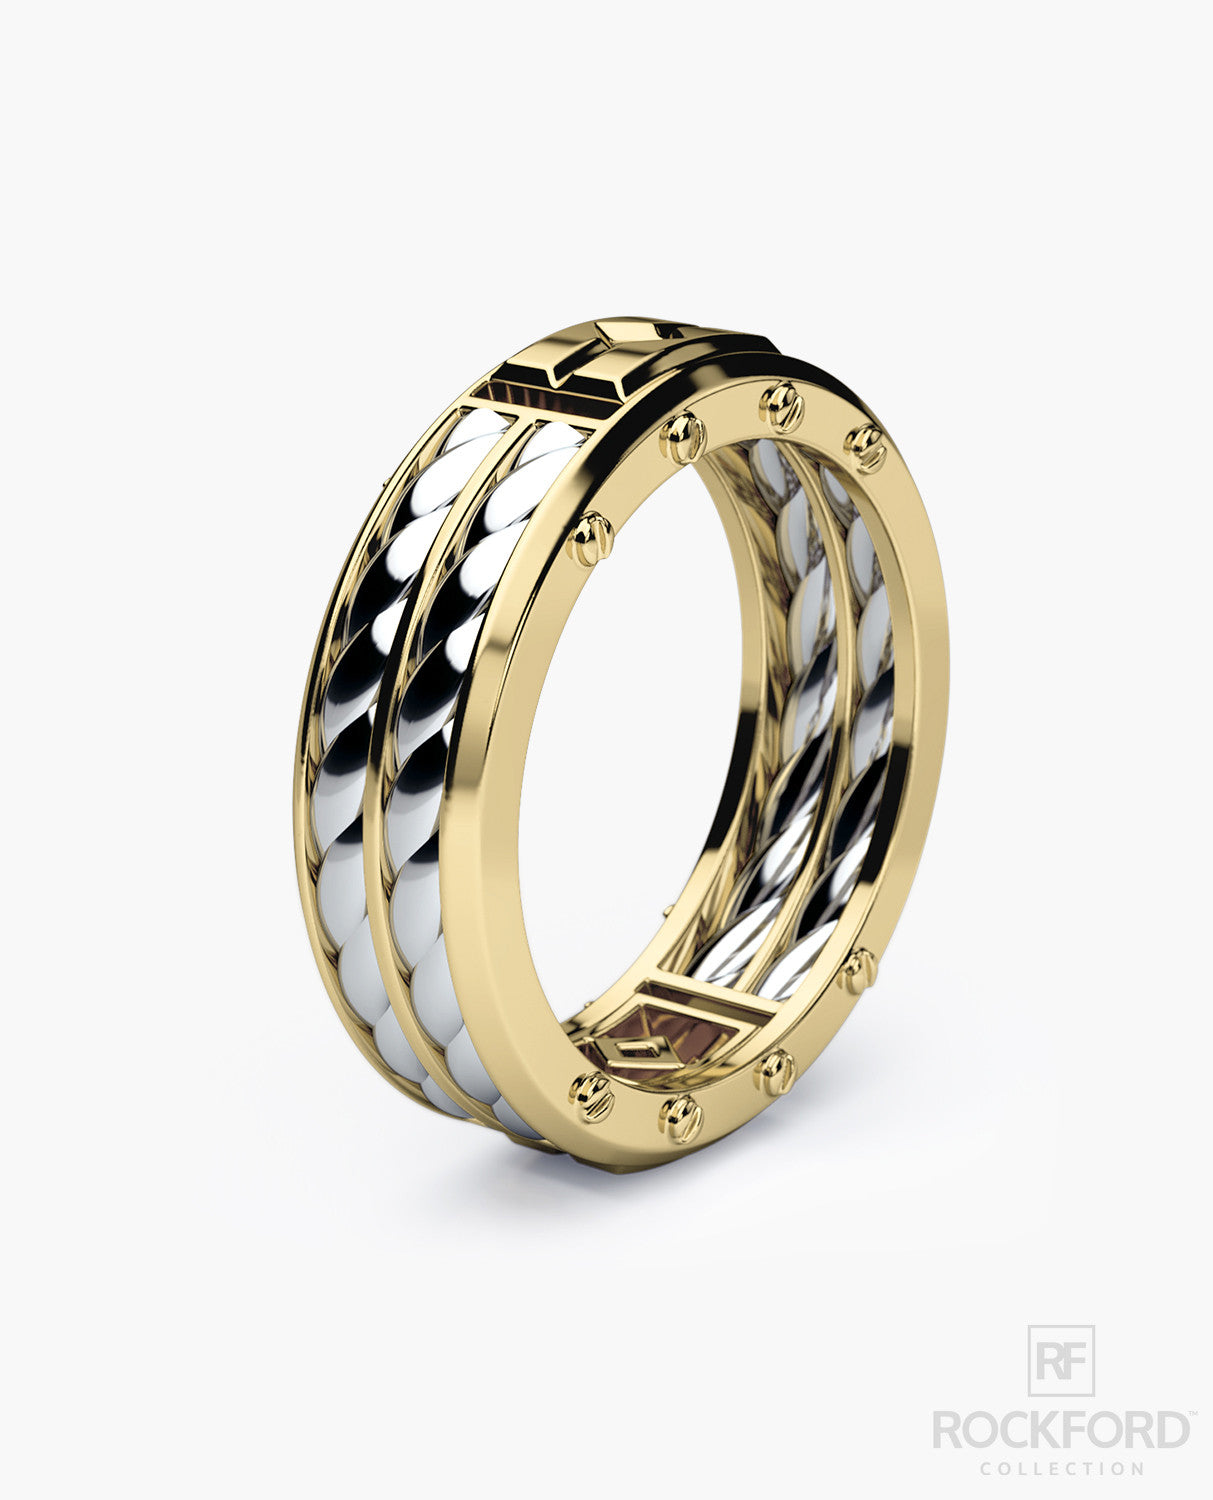 twotone ring hers stepedge bands raised couples matching band wedding tone his jewelry carbide p center tungsten gold edge two and polished with for step set